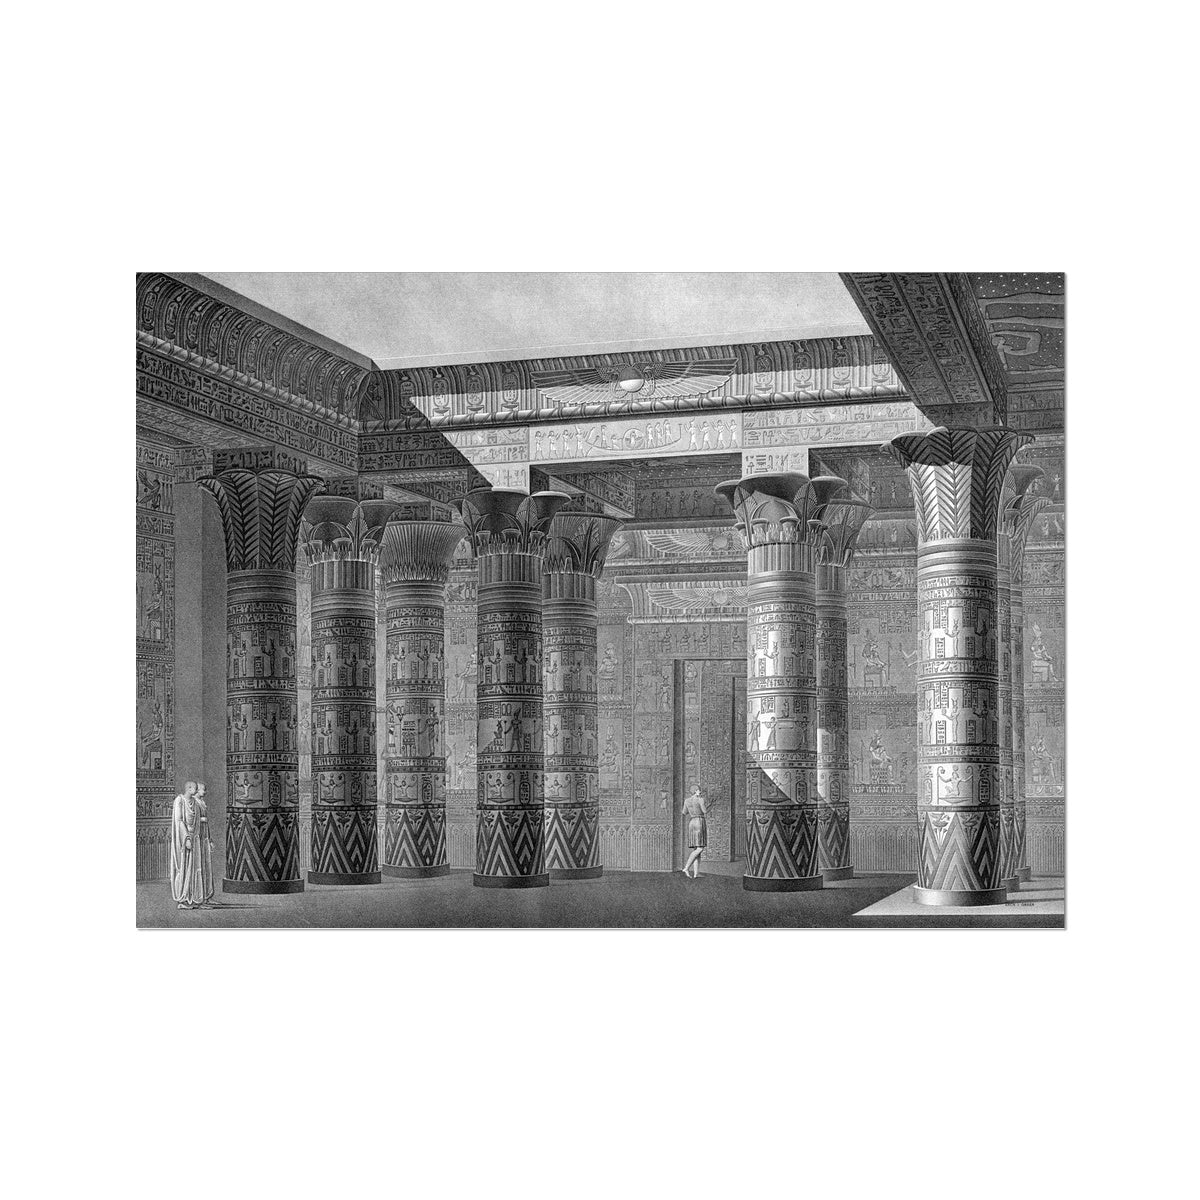 The Temple of Isis Portico Perspective - Philae Egypt -  Etching Paper Print